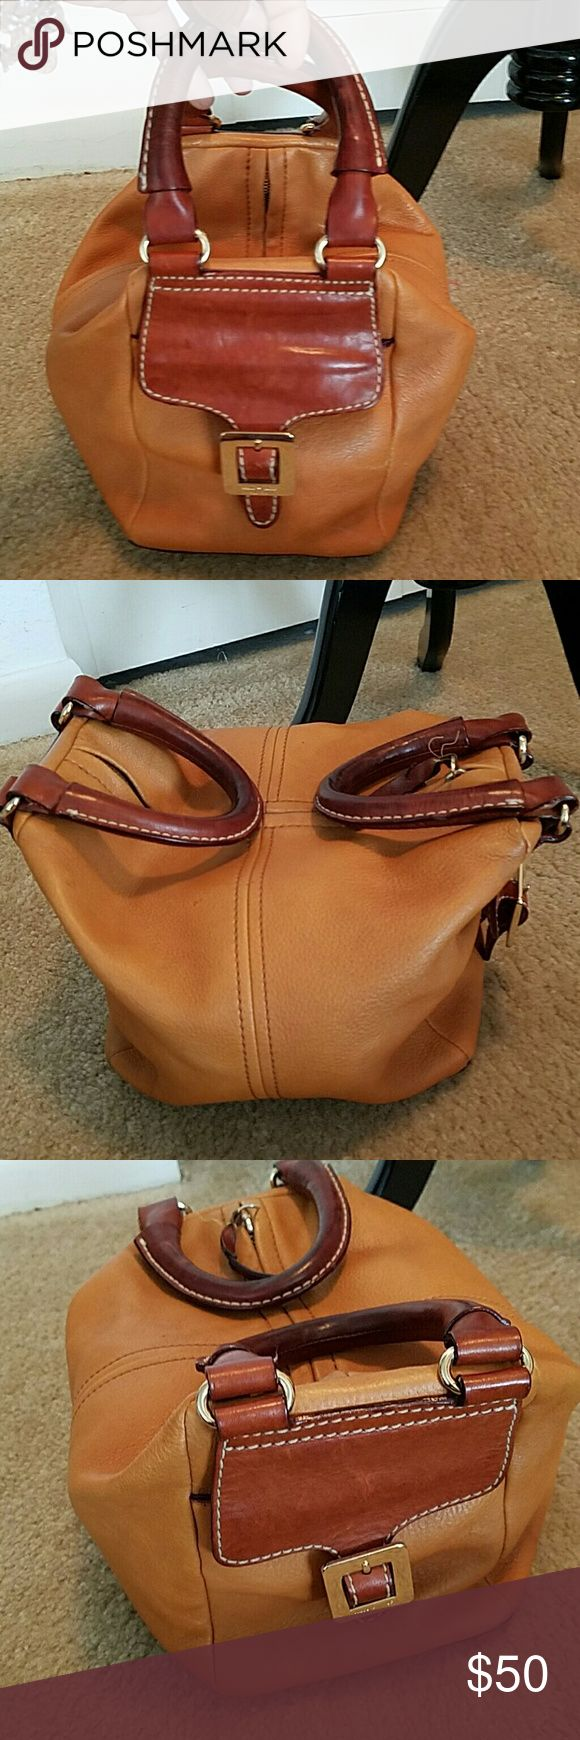 Rare KATE SPATE Leather Satchel Handbag Pre owned in great condition.  Leather does show some light wear.  Inside is clean. kate spade Bags Satchels